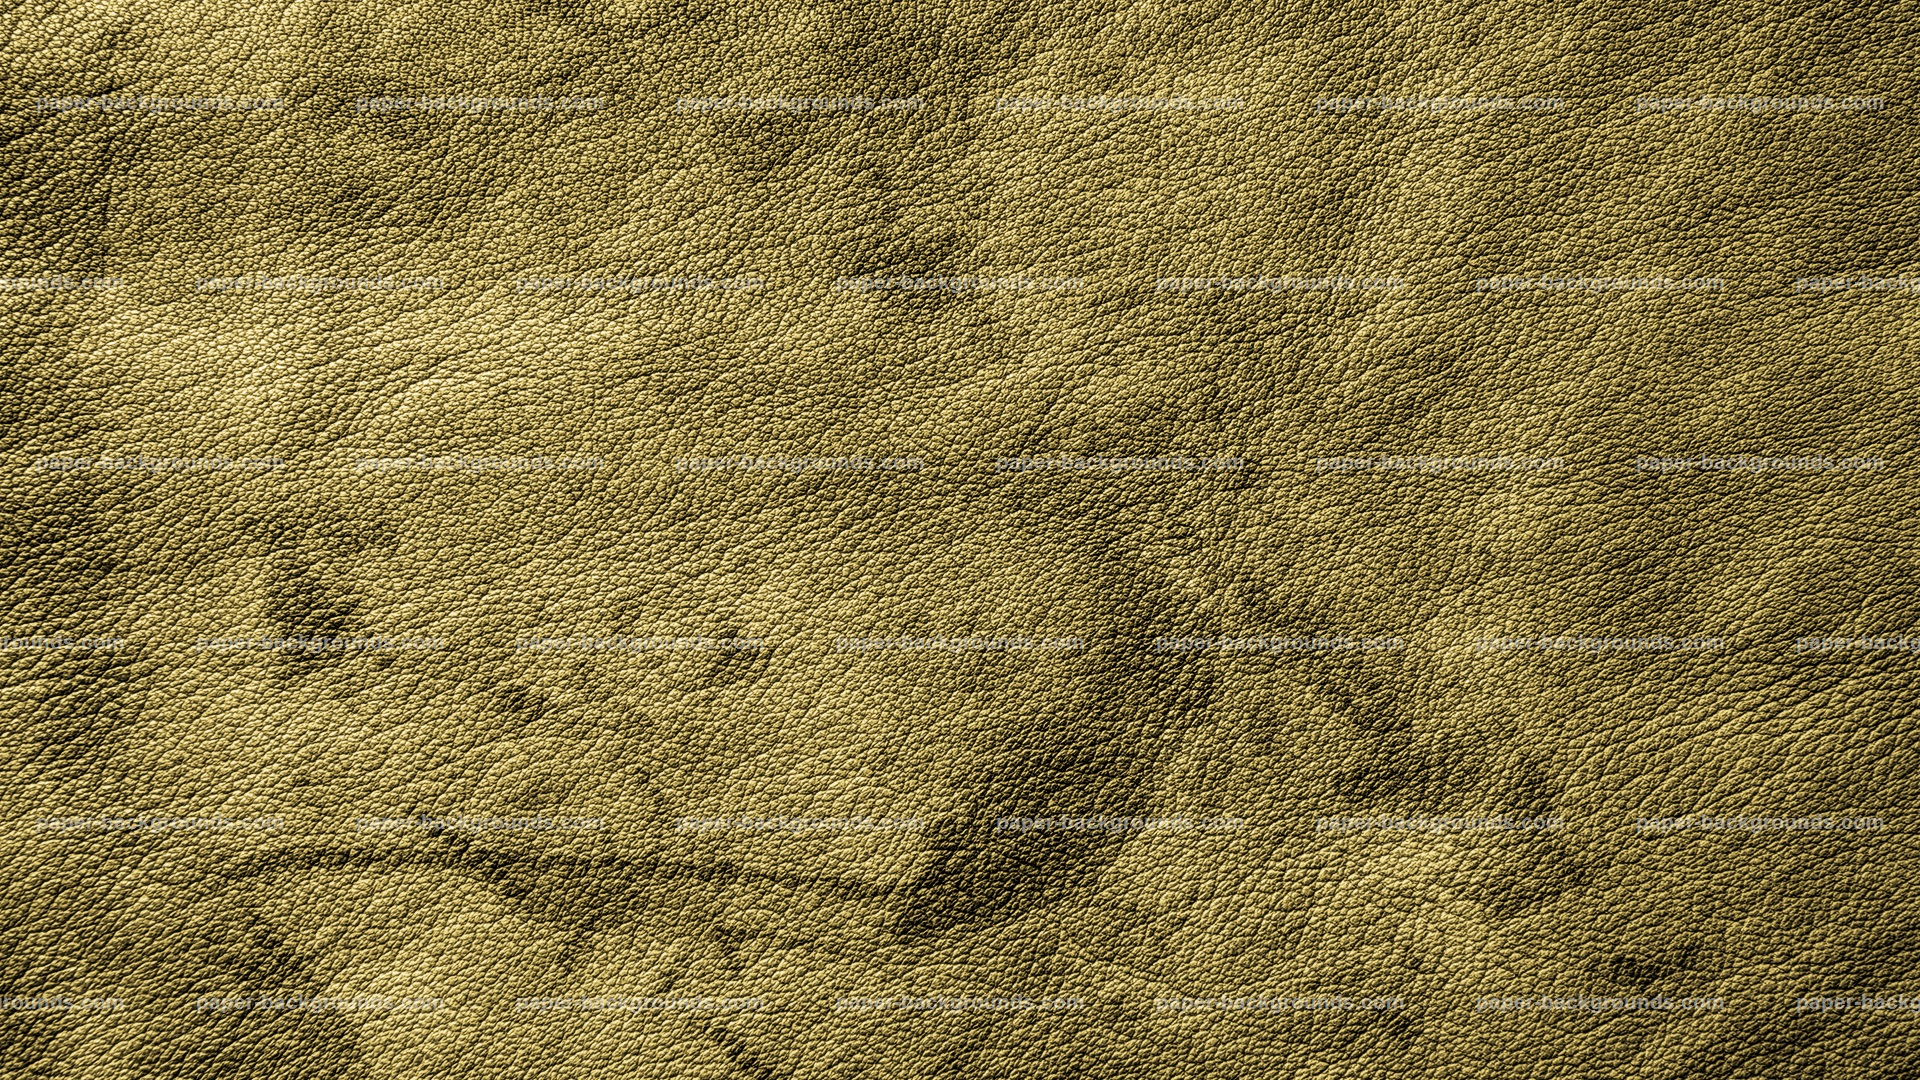 Paper Backgrounds Army Green Grunge Leather Texture Background 1920x1080